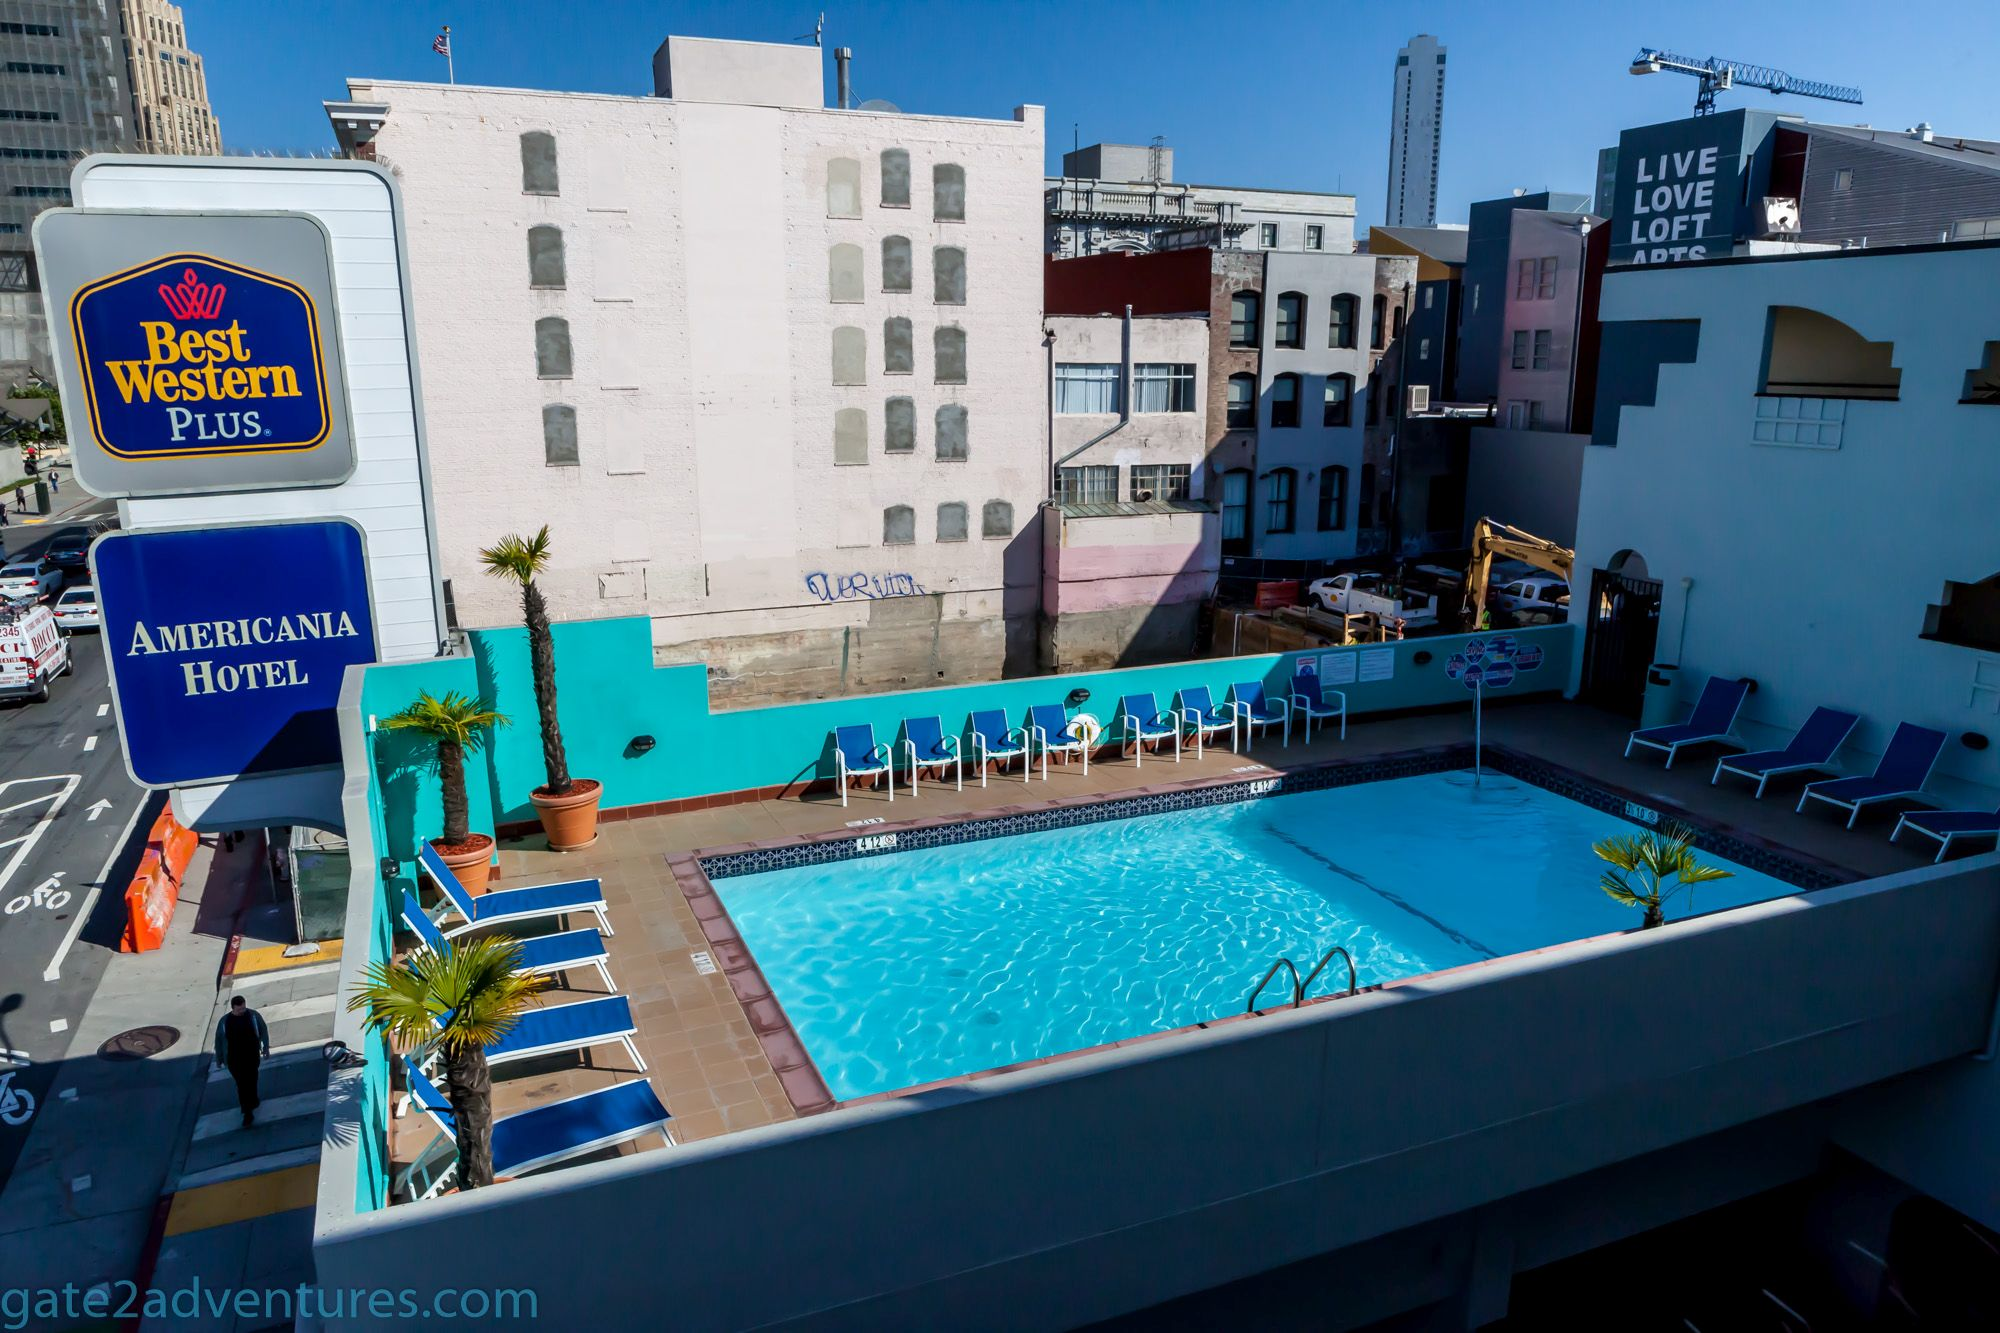 Hotel Review: Best Western Plus Americania in San Francisco